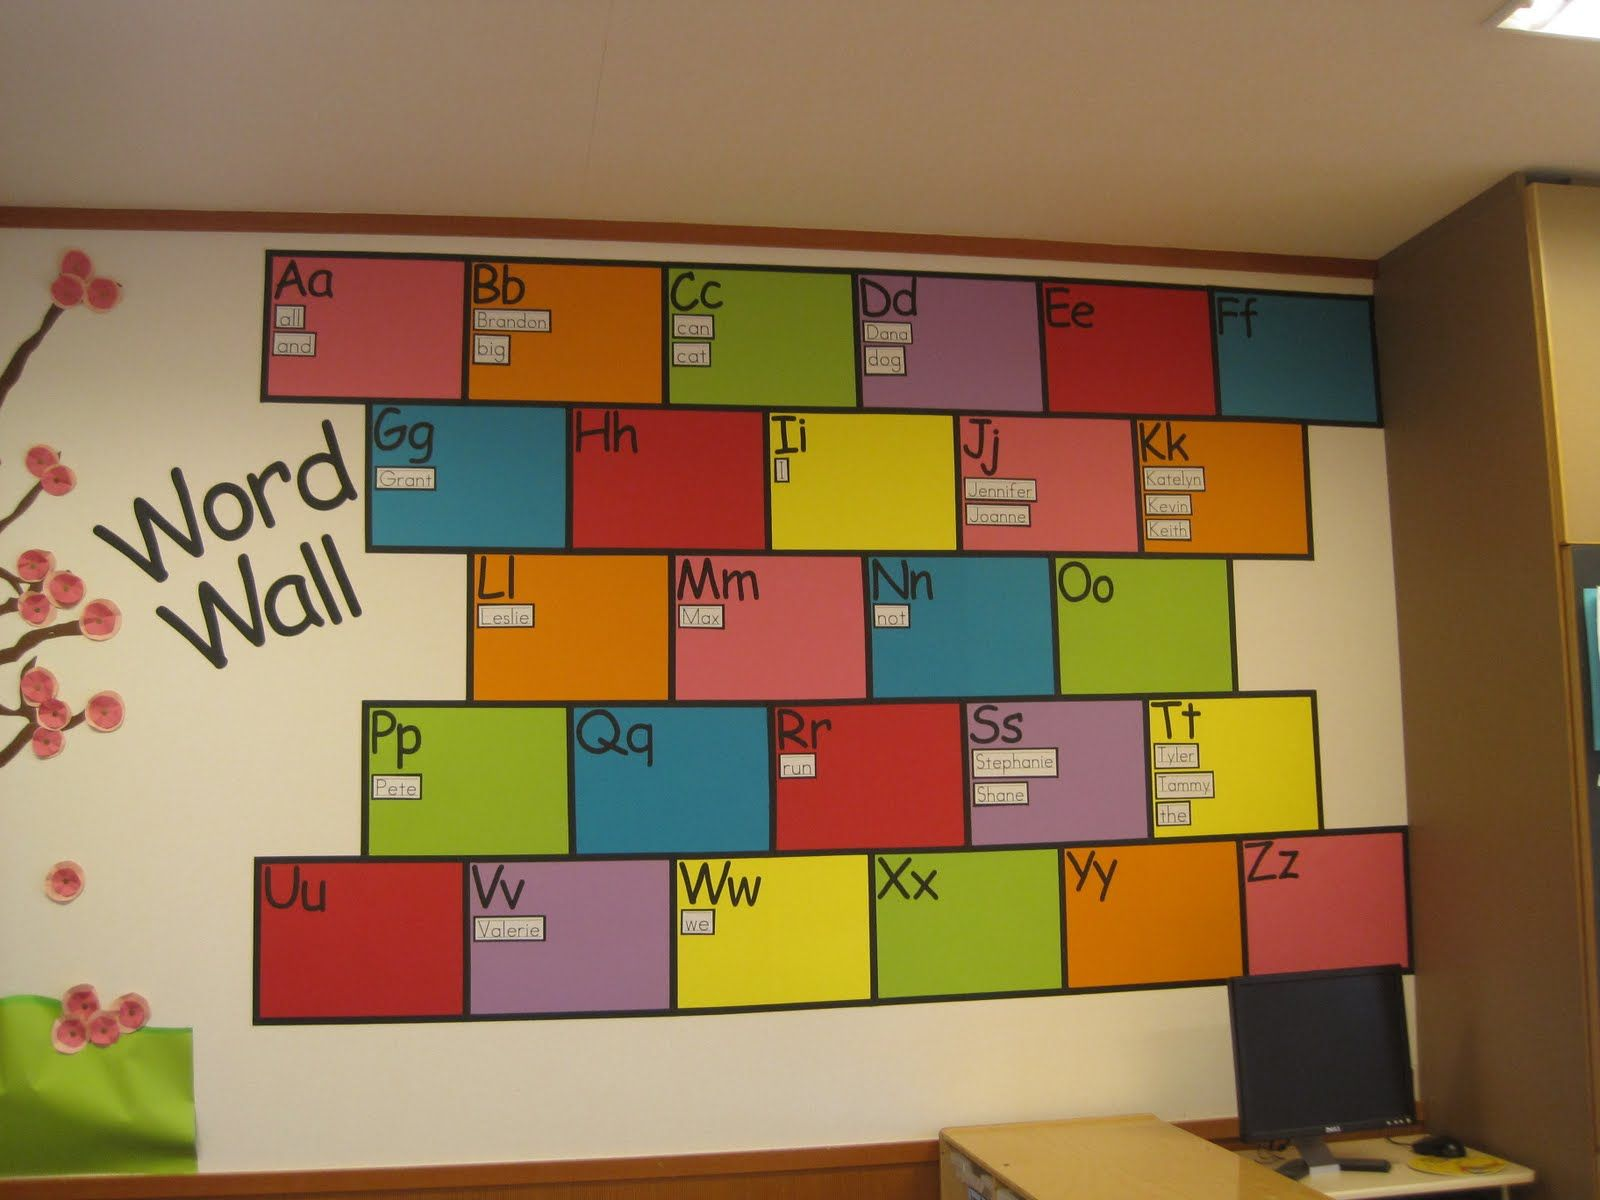 Wall colors for preschool rooms - Colorful Word Wall This Would Work Well With Our Bright Color Scheme Classroom